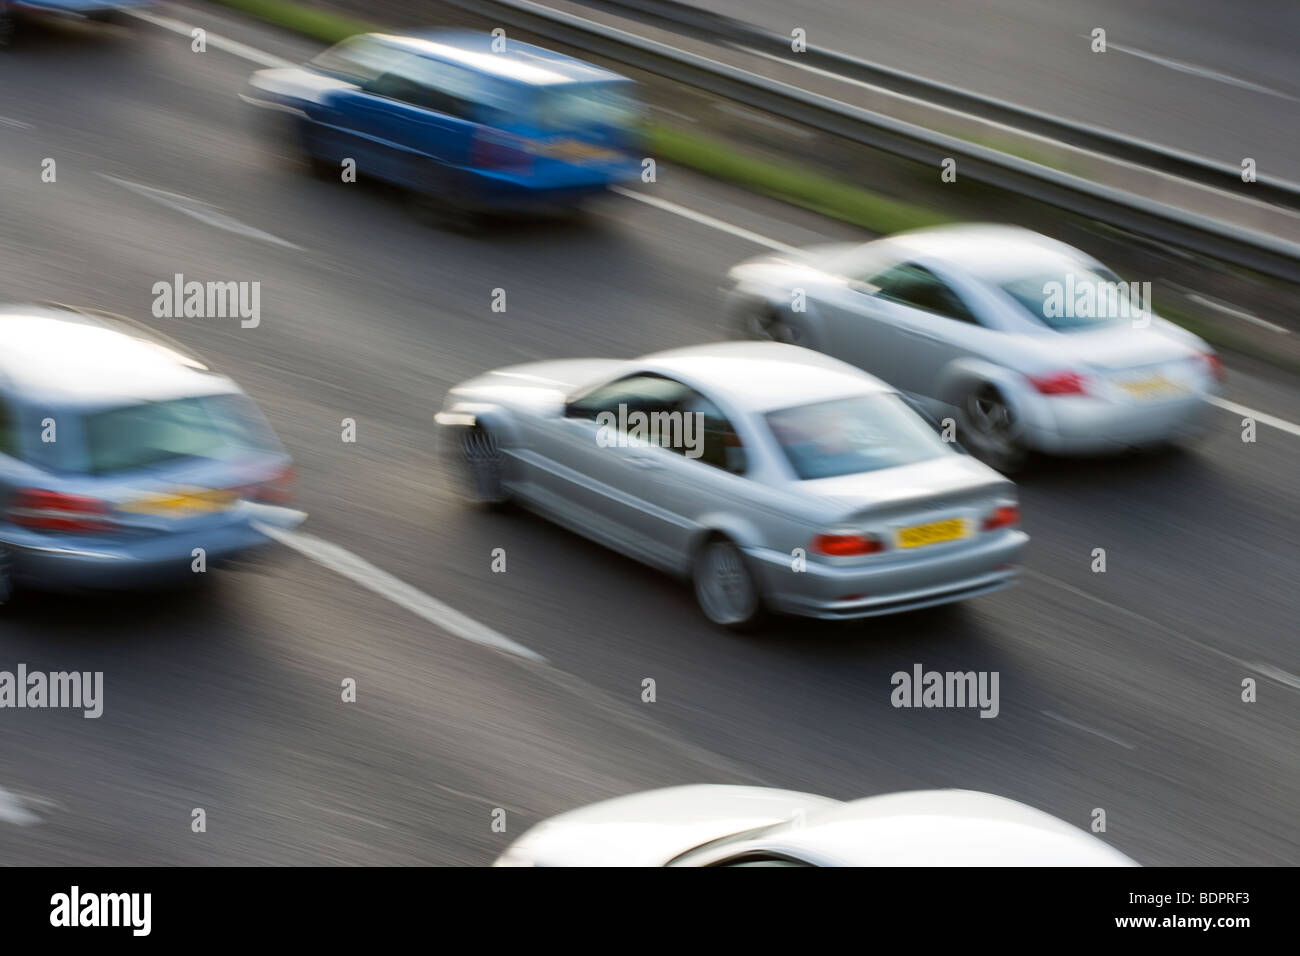 Cars on motorway. UK - Stock Image